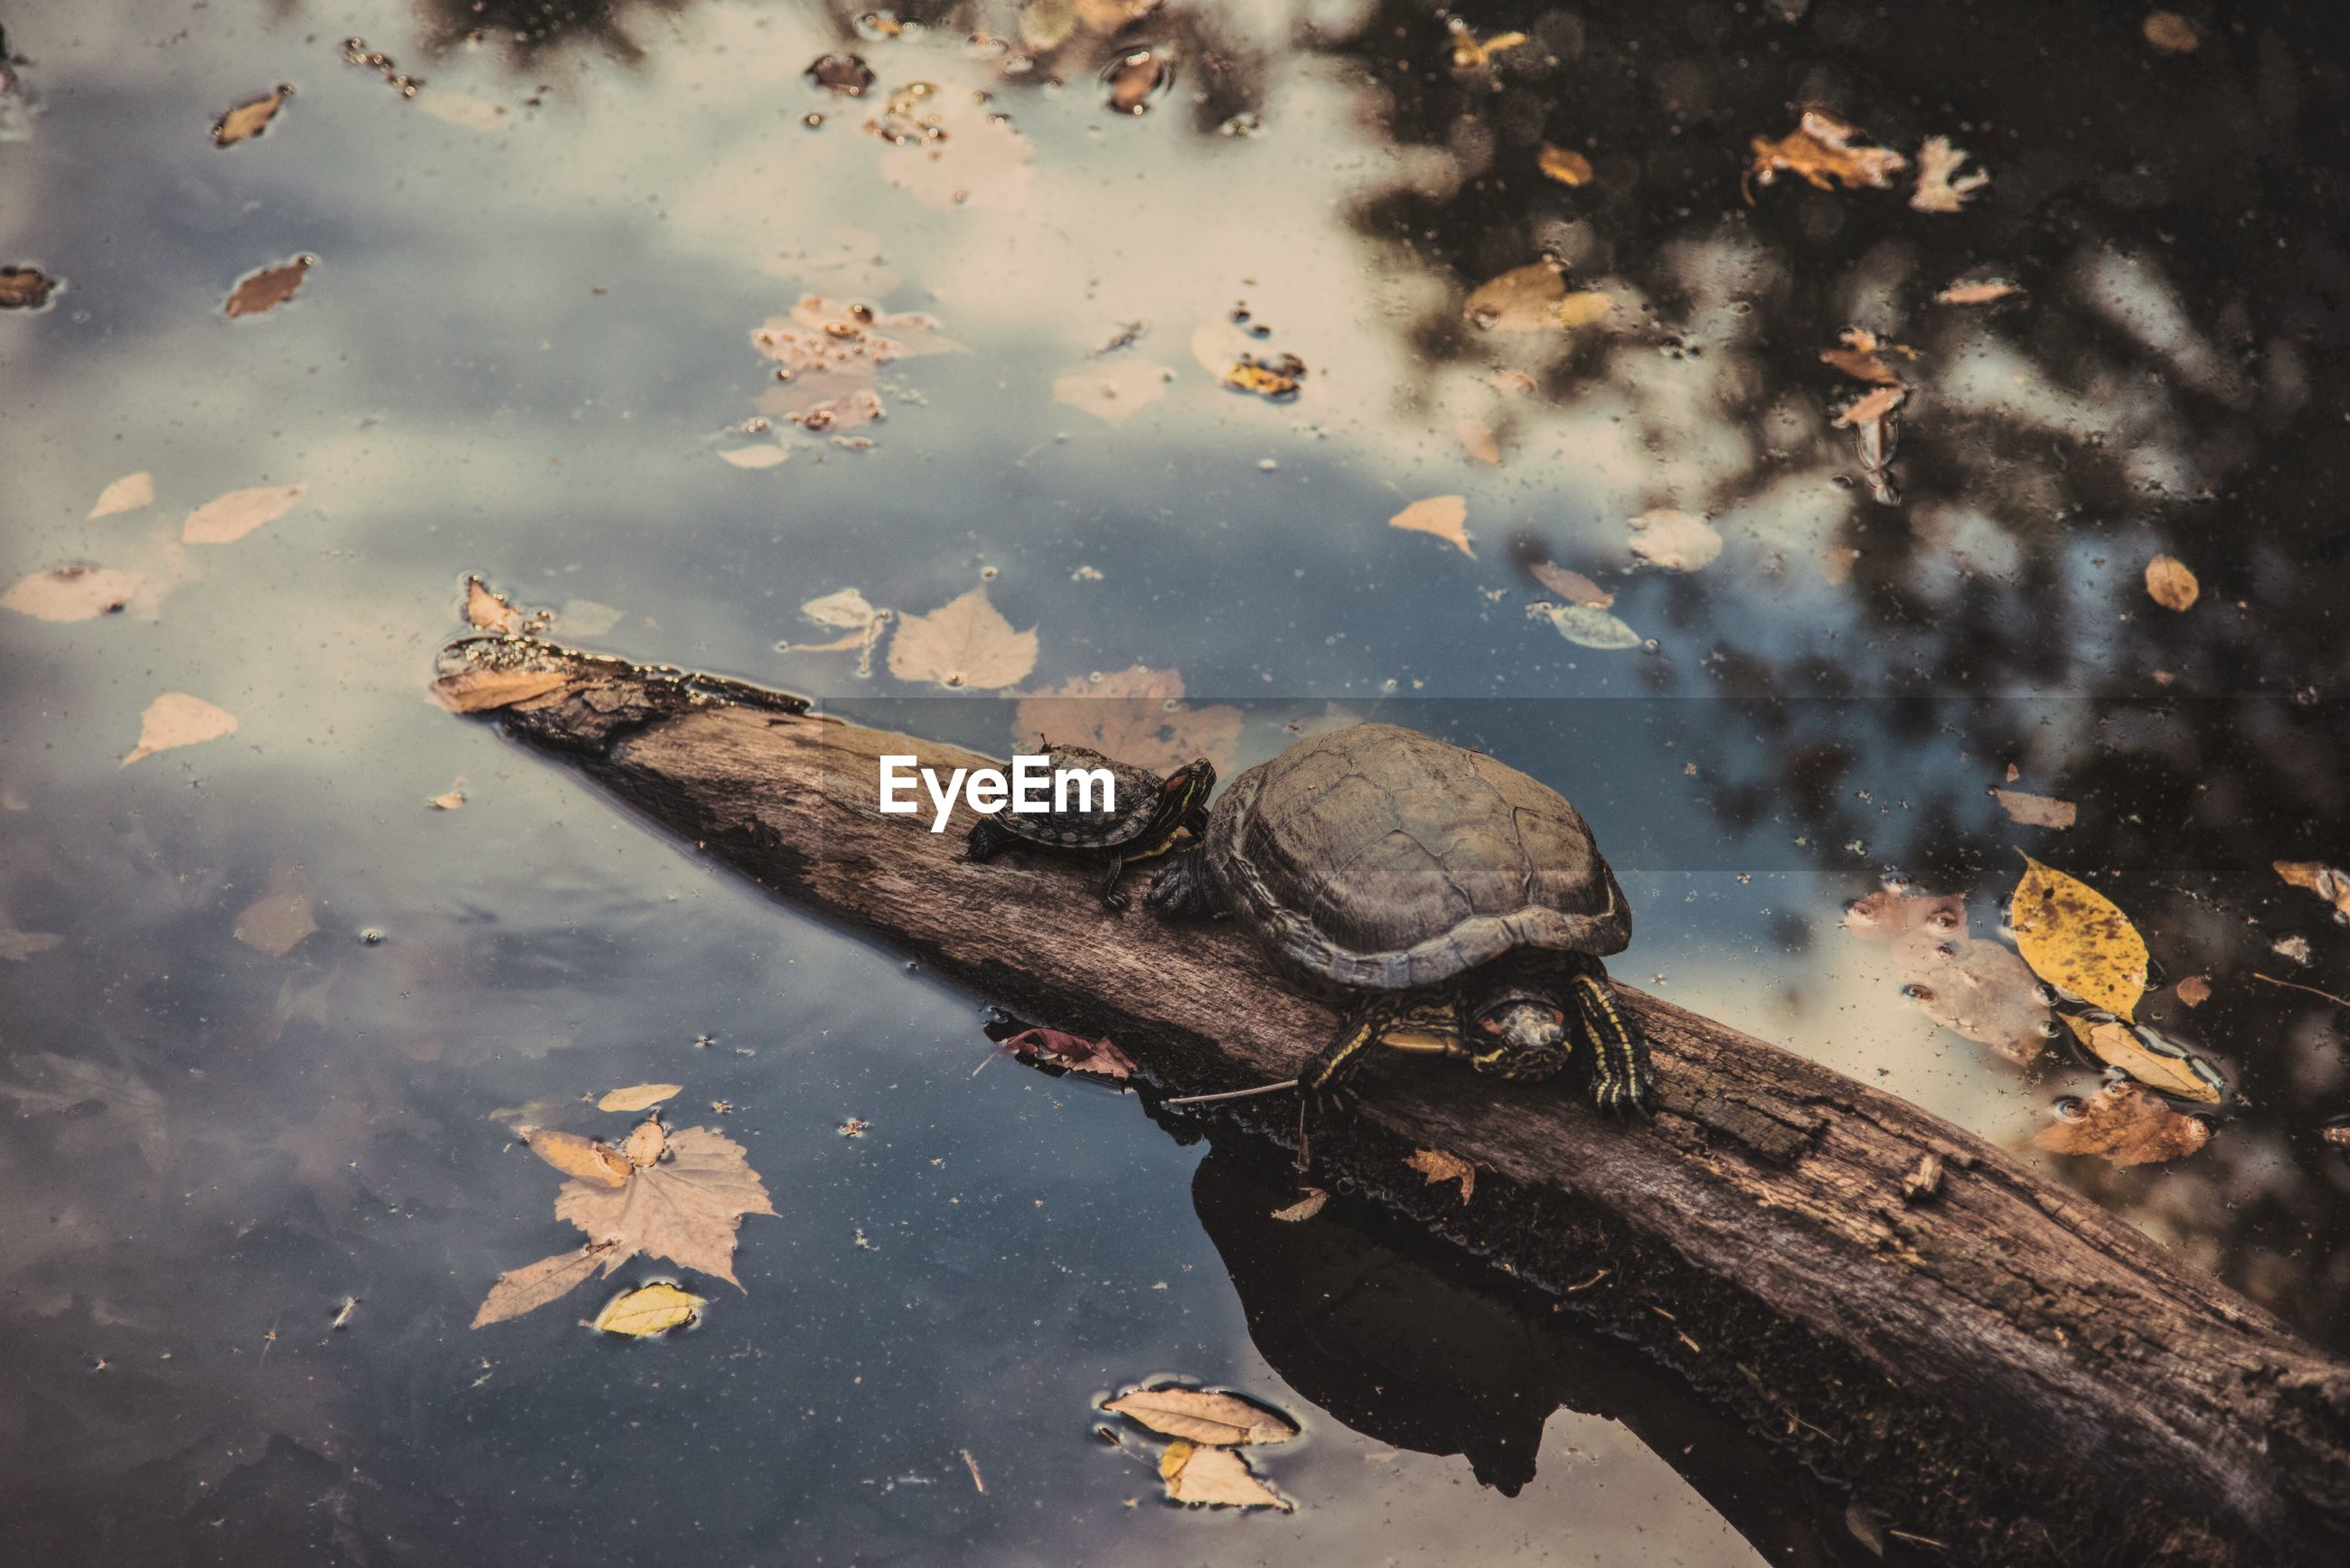 High angle view of turtles on fallen tree over lake